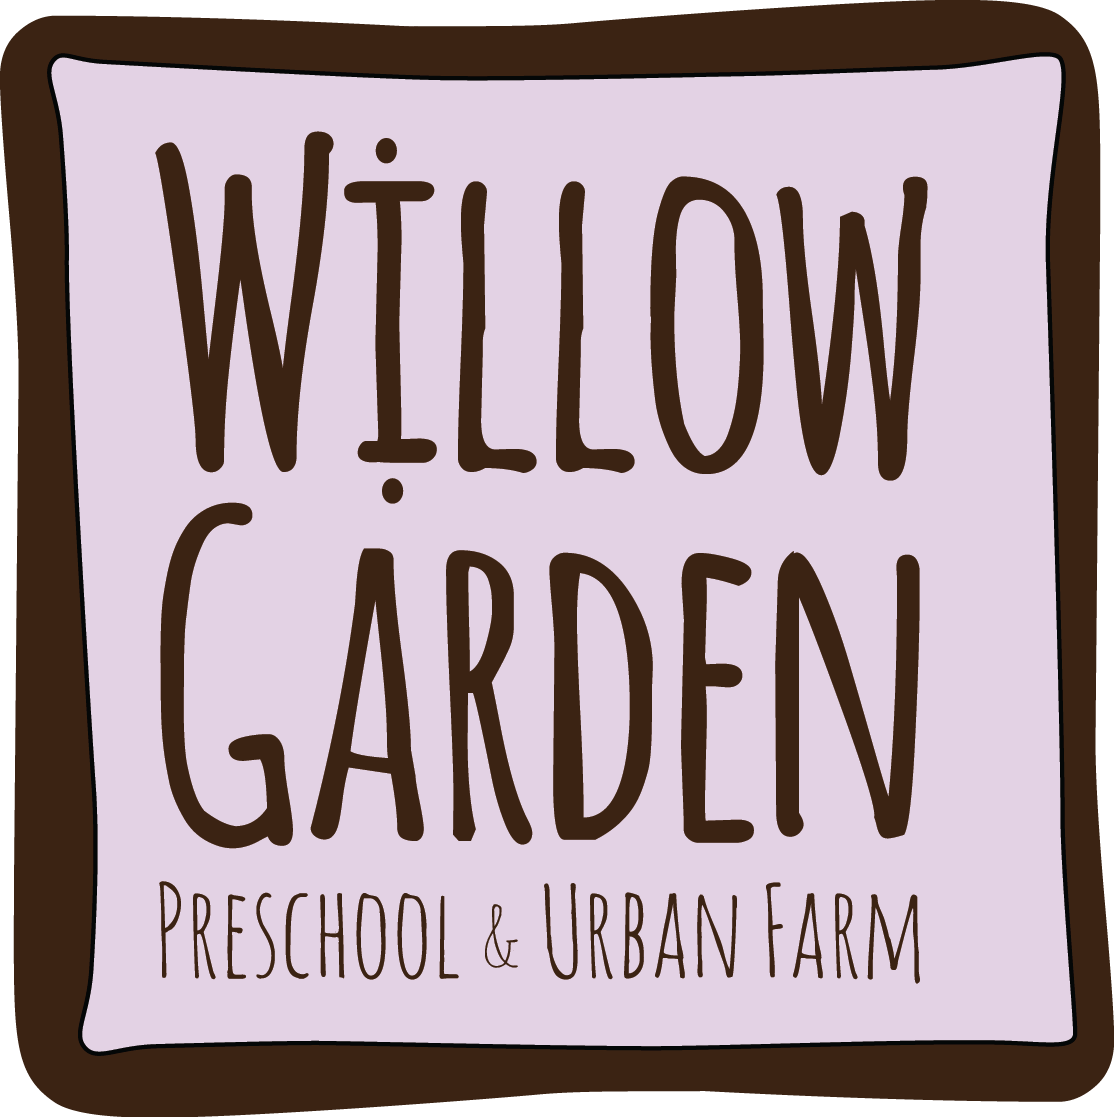 Willow Garden Preschool & Urban Farm